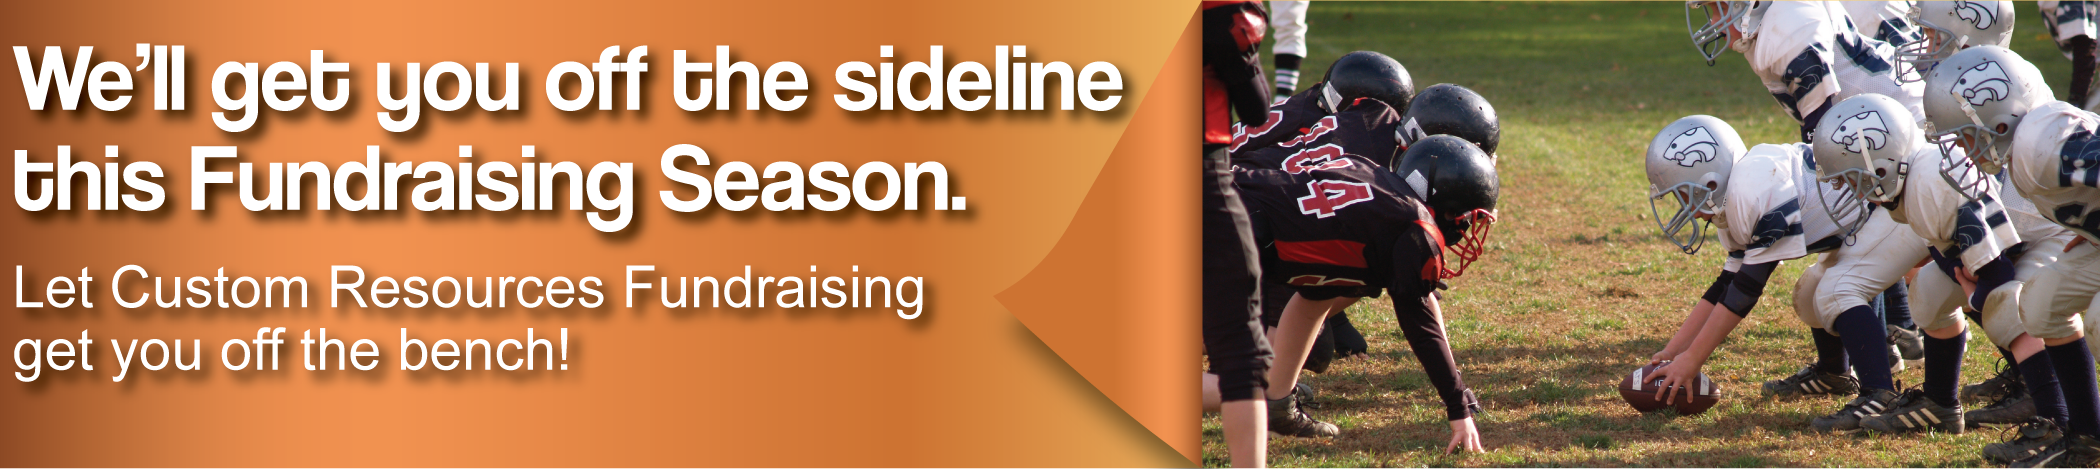 football-banner-positive-01.png